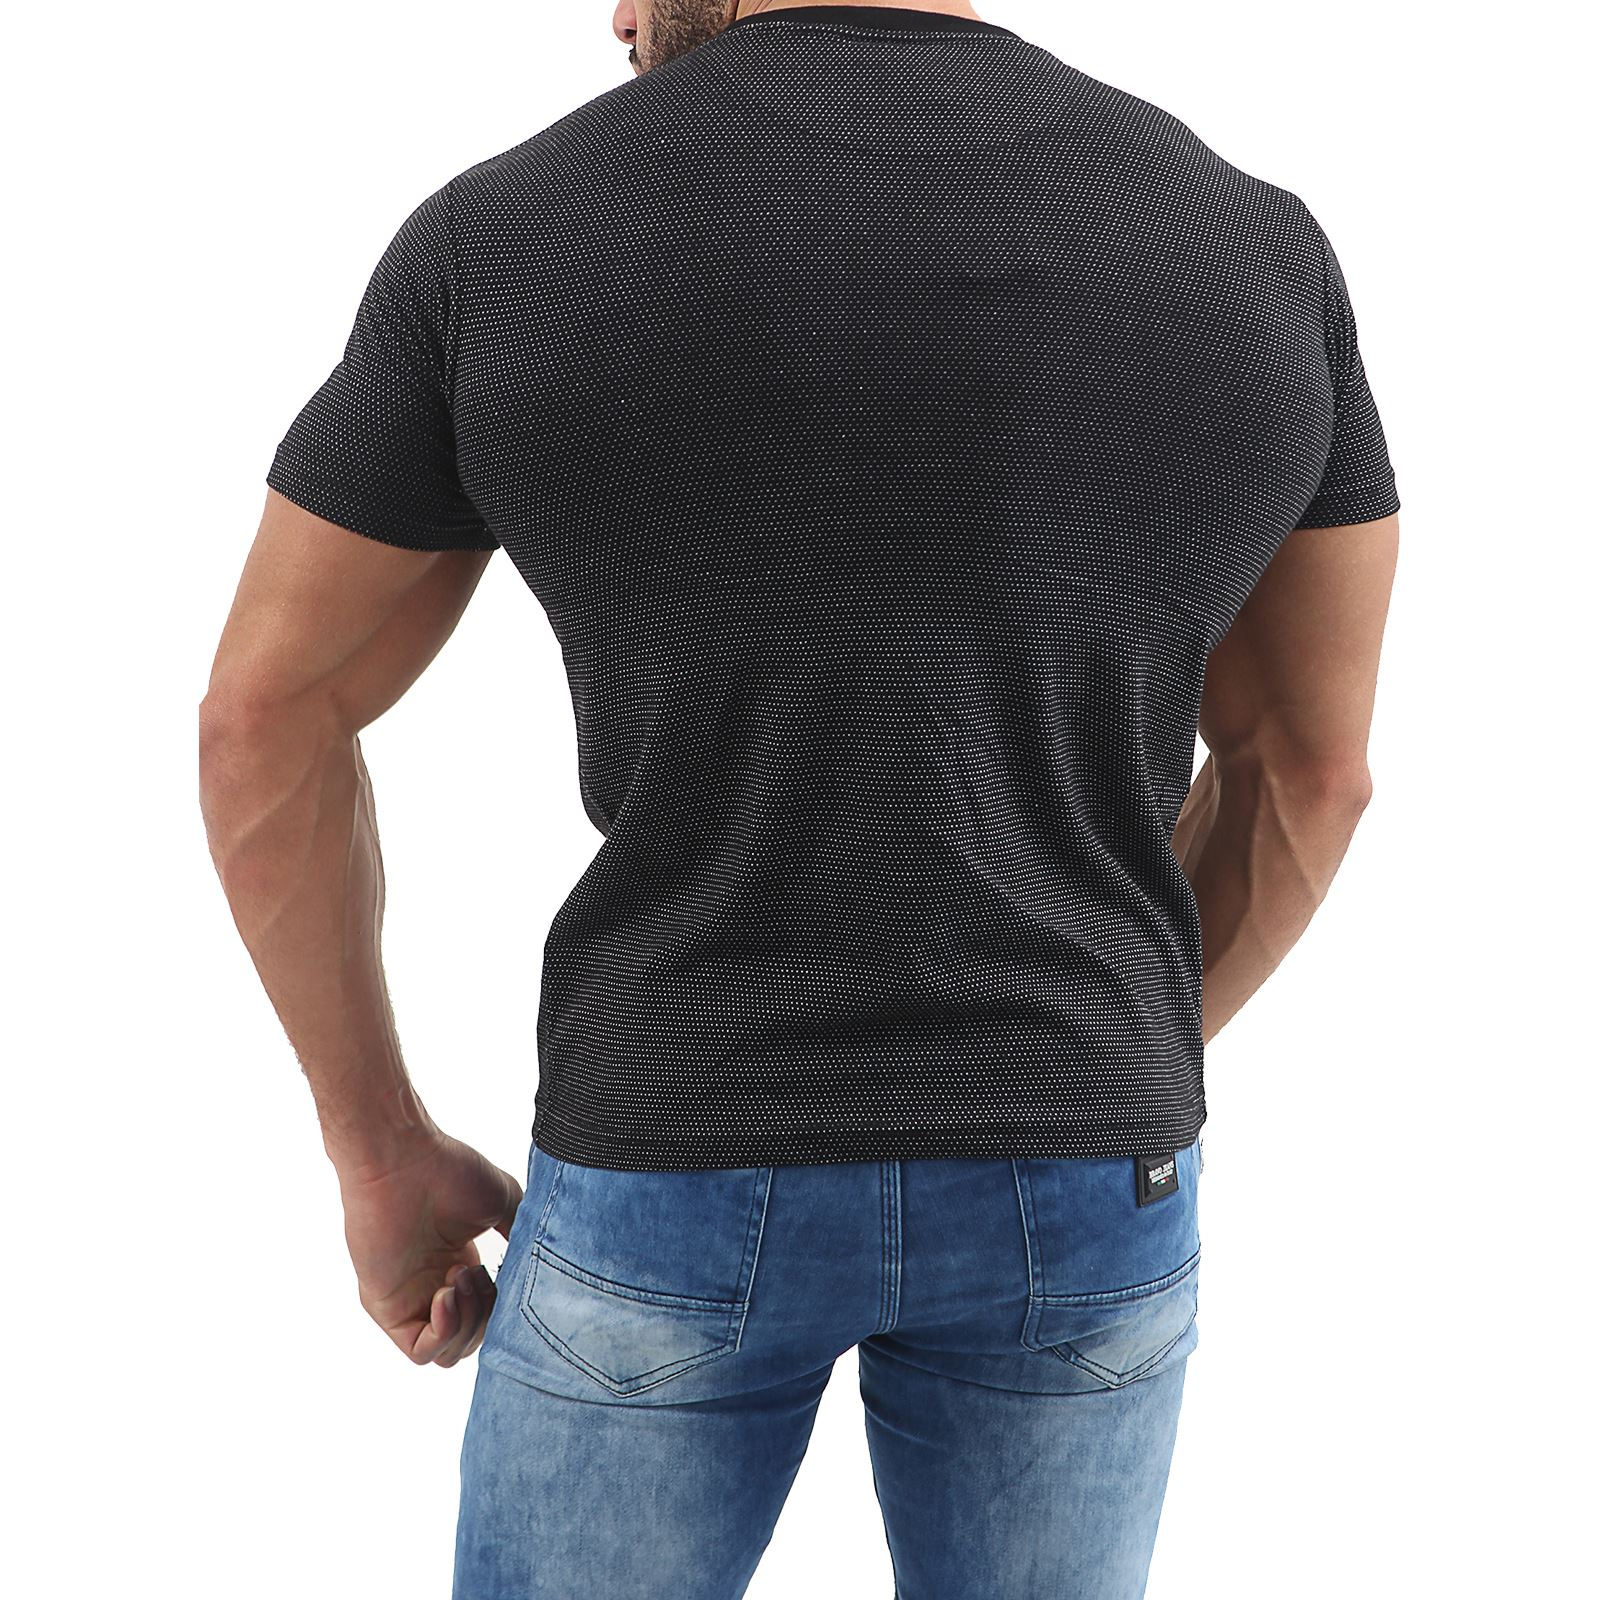 Mens-HLY-EQPT-Printed-T-Shirt-100-Cotton-Gym-Athletic-Training-Tee-Top-Summer thumbnail 22